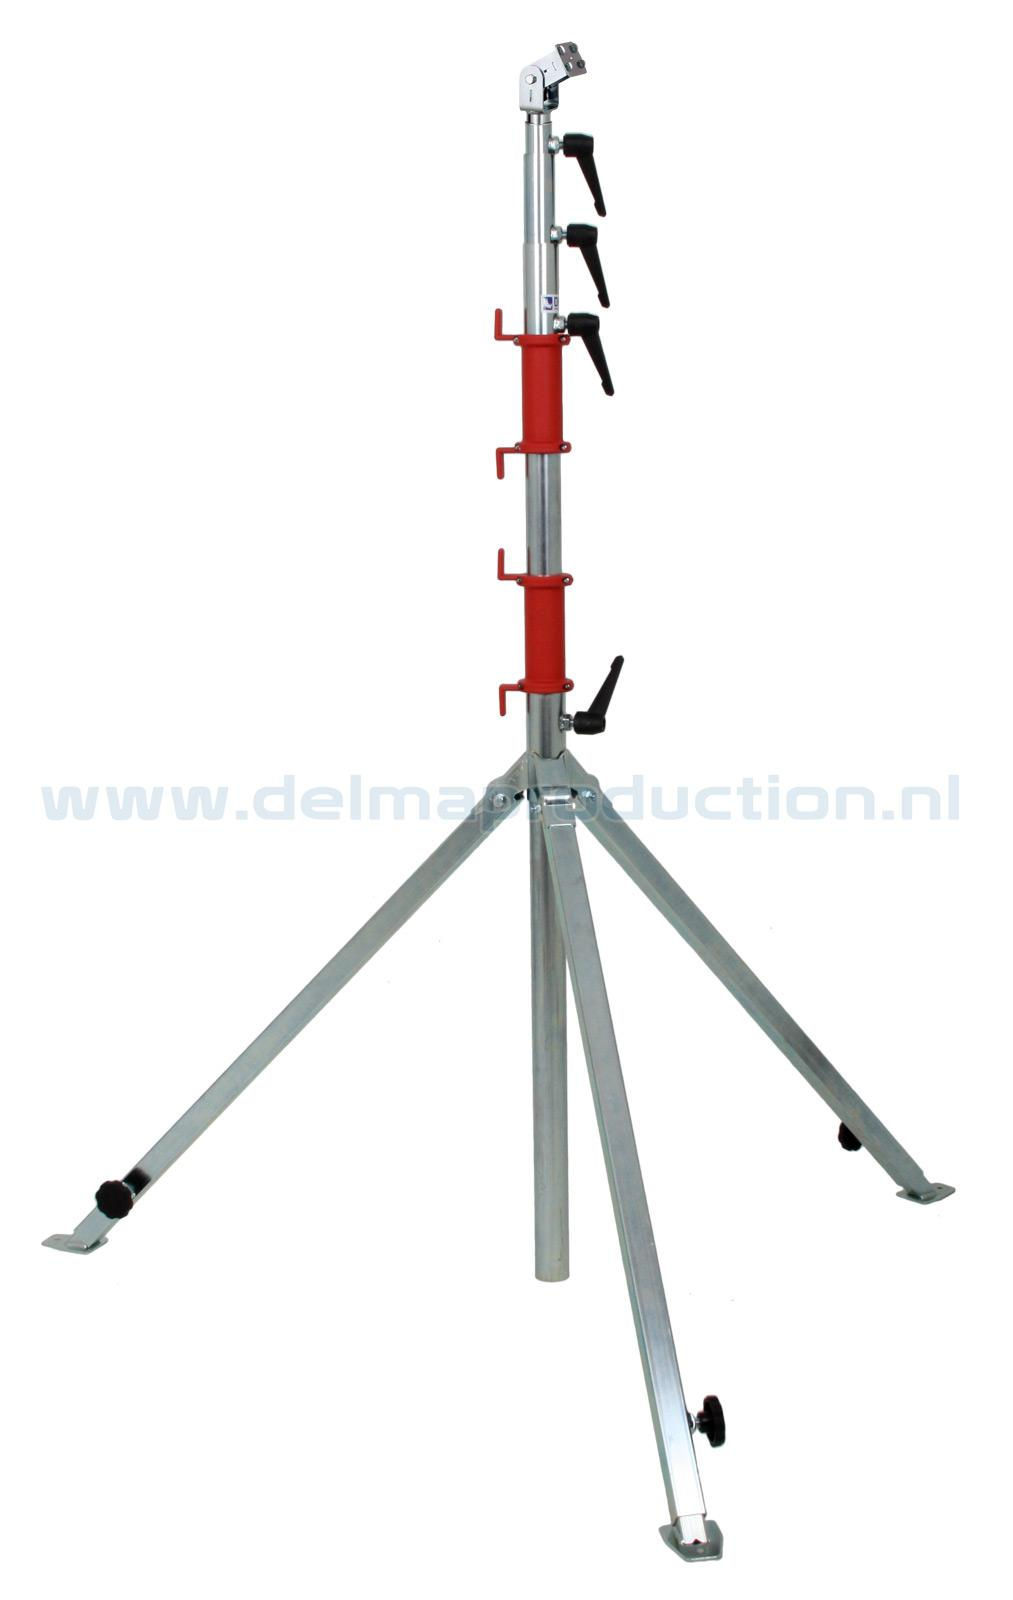 Tripod worklight stand 5-part, adjustable undercarriage, quick release system